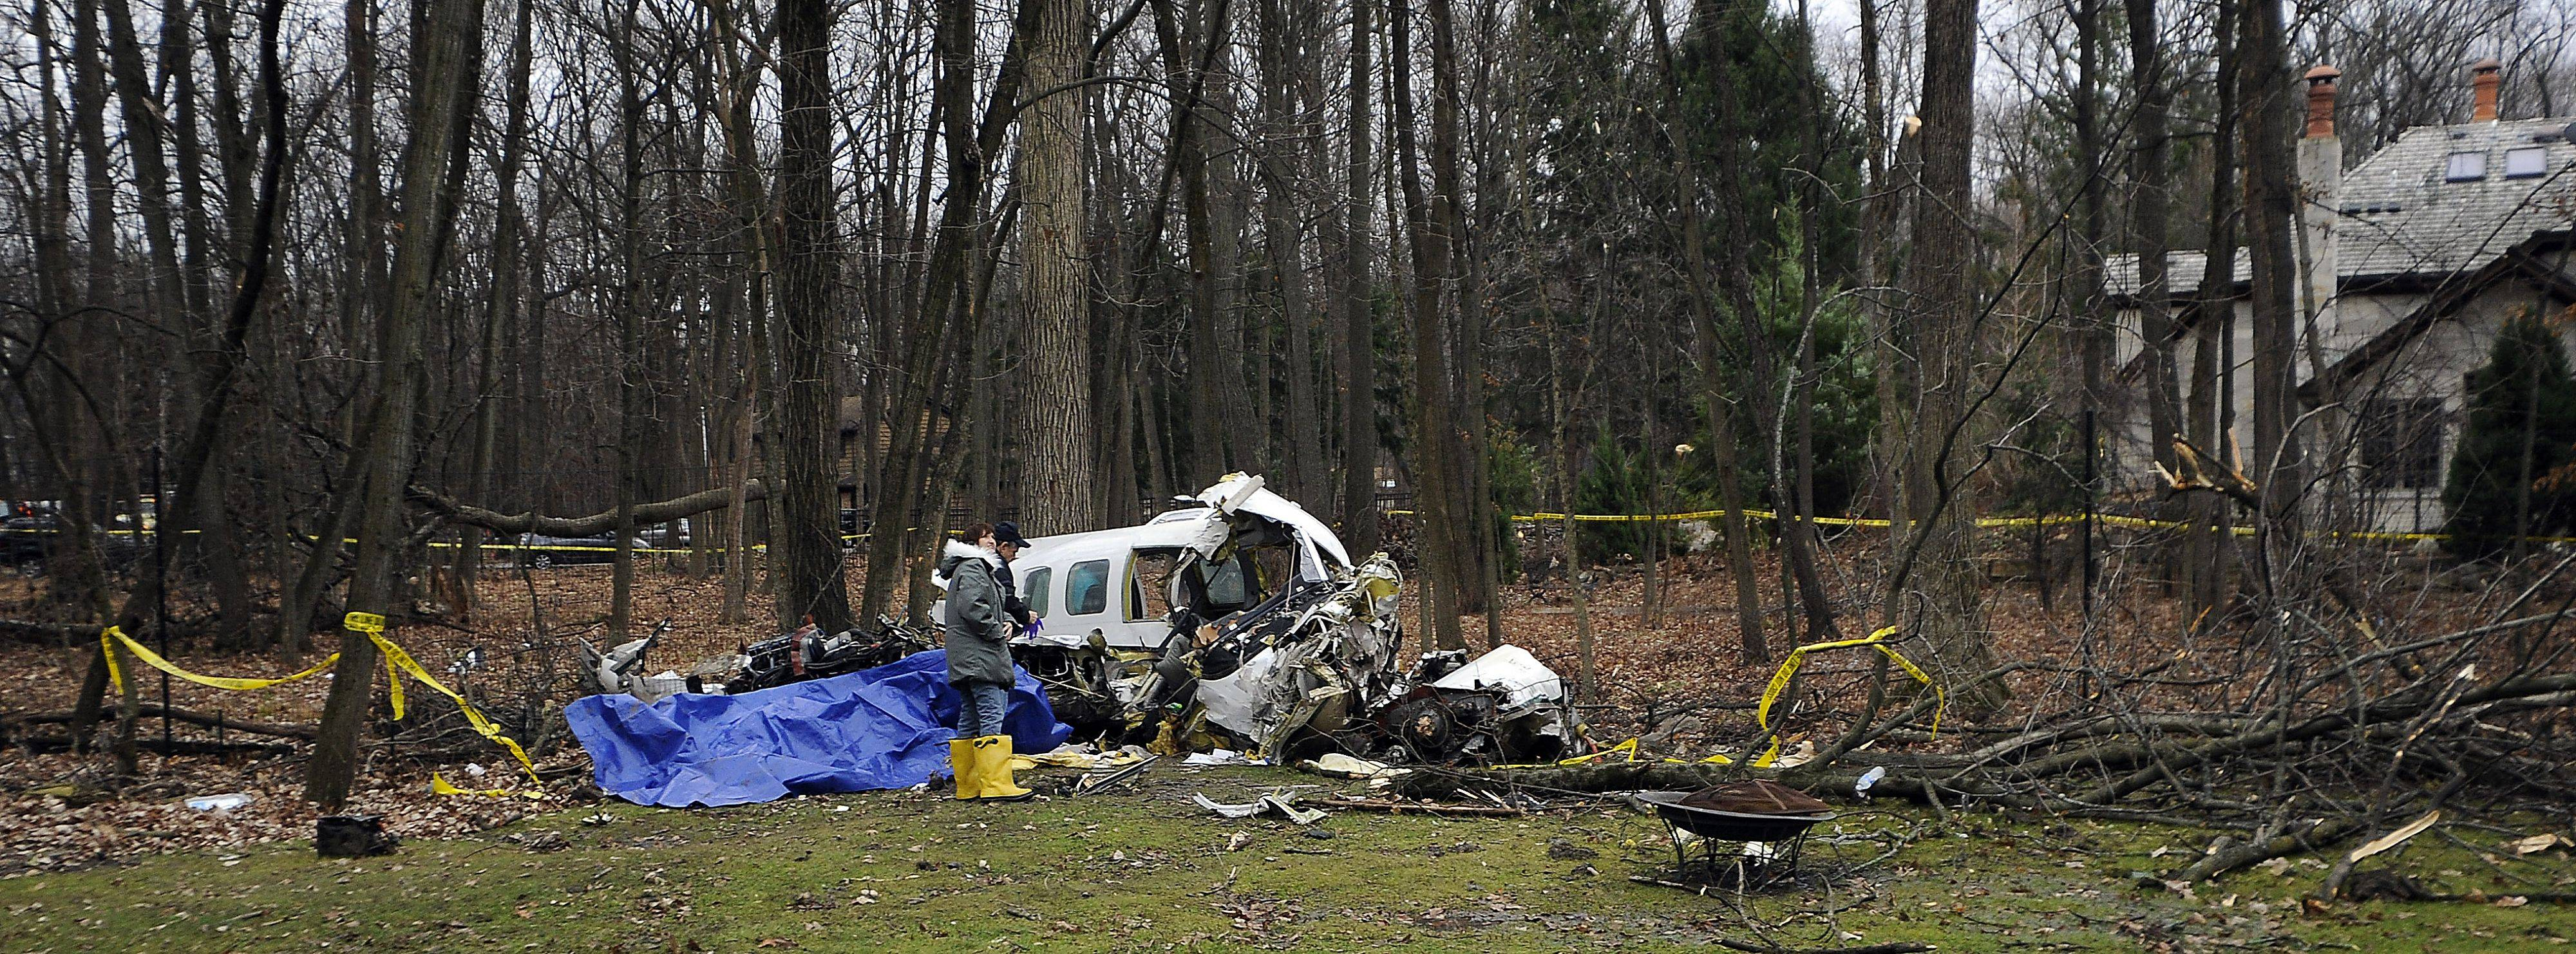 A twin-engine plane crashed Monday night between two houses in Riverwoods. No one on the ground was injured but three people on the plane were killed and two others were injured.